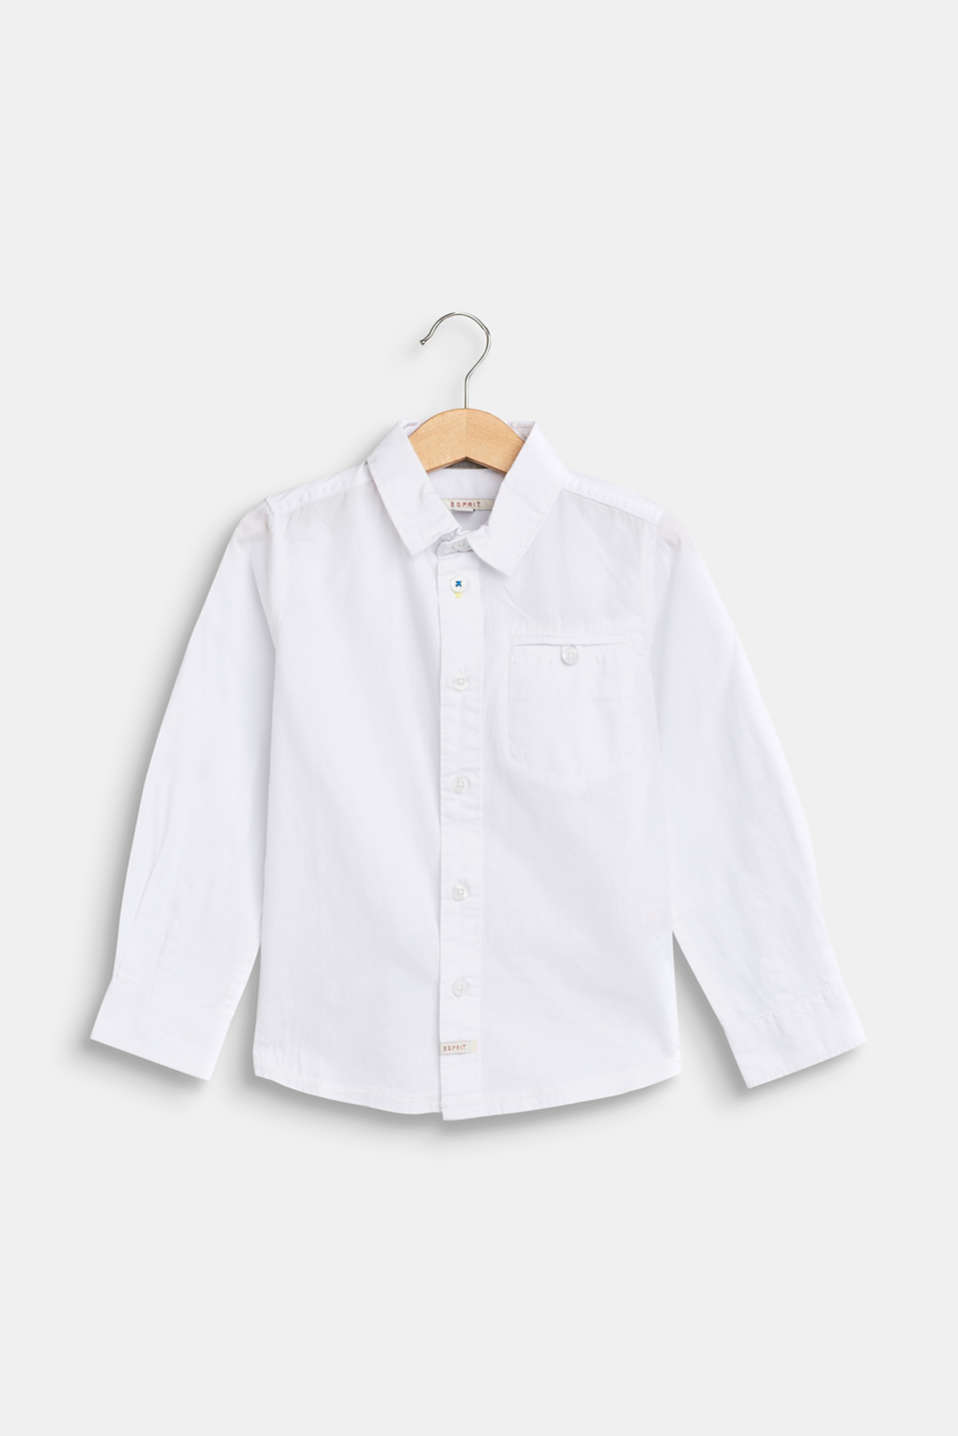 Esprit - 100% cotton shirt with a breast pocket